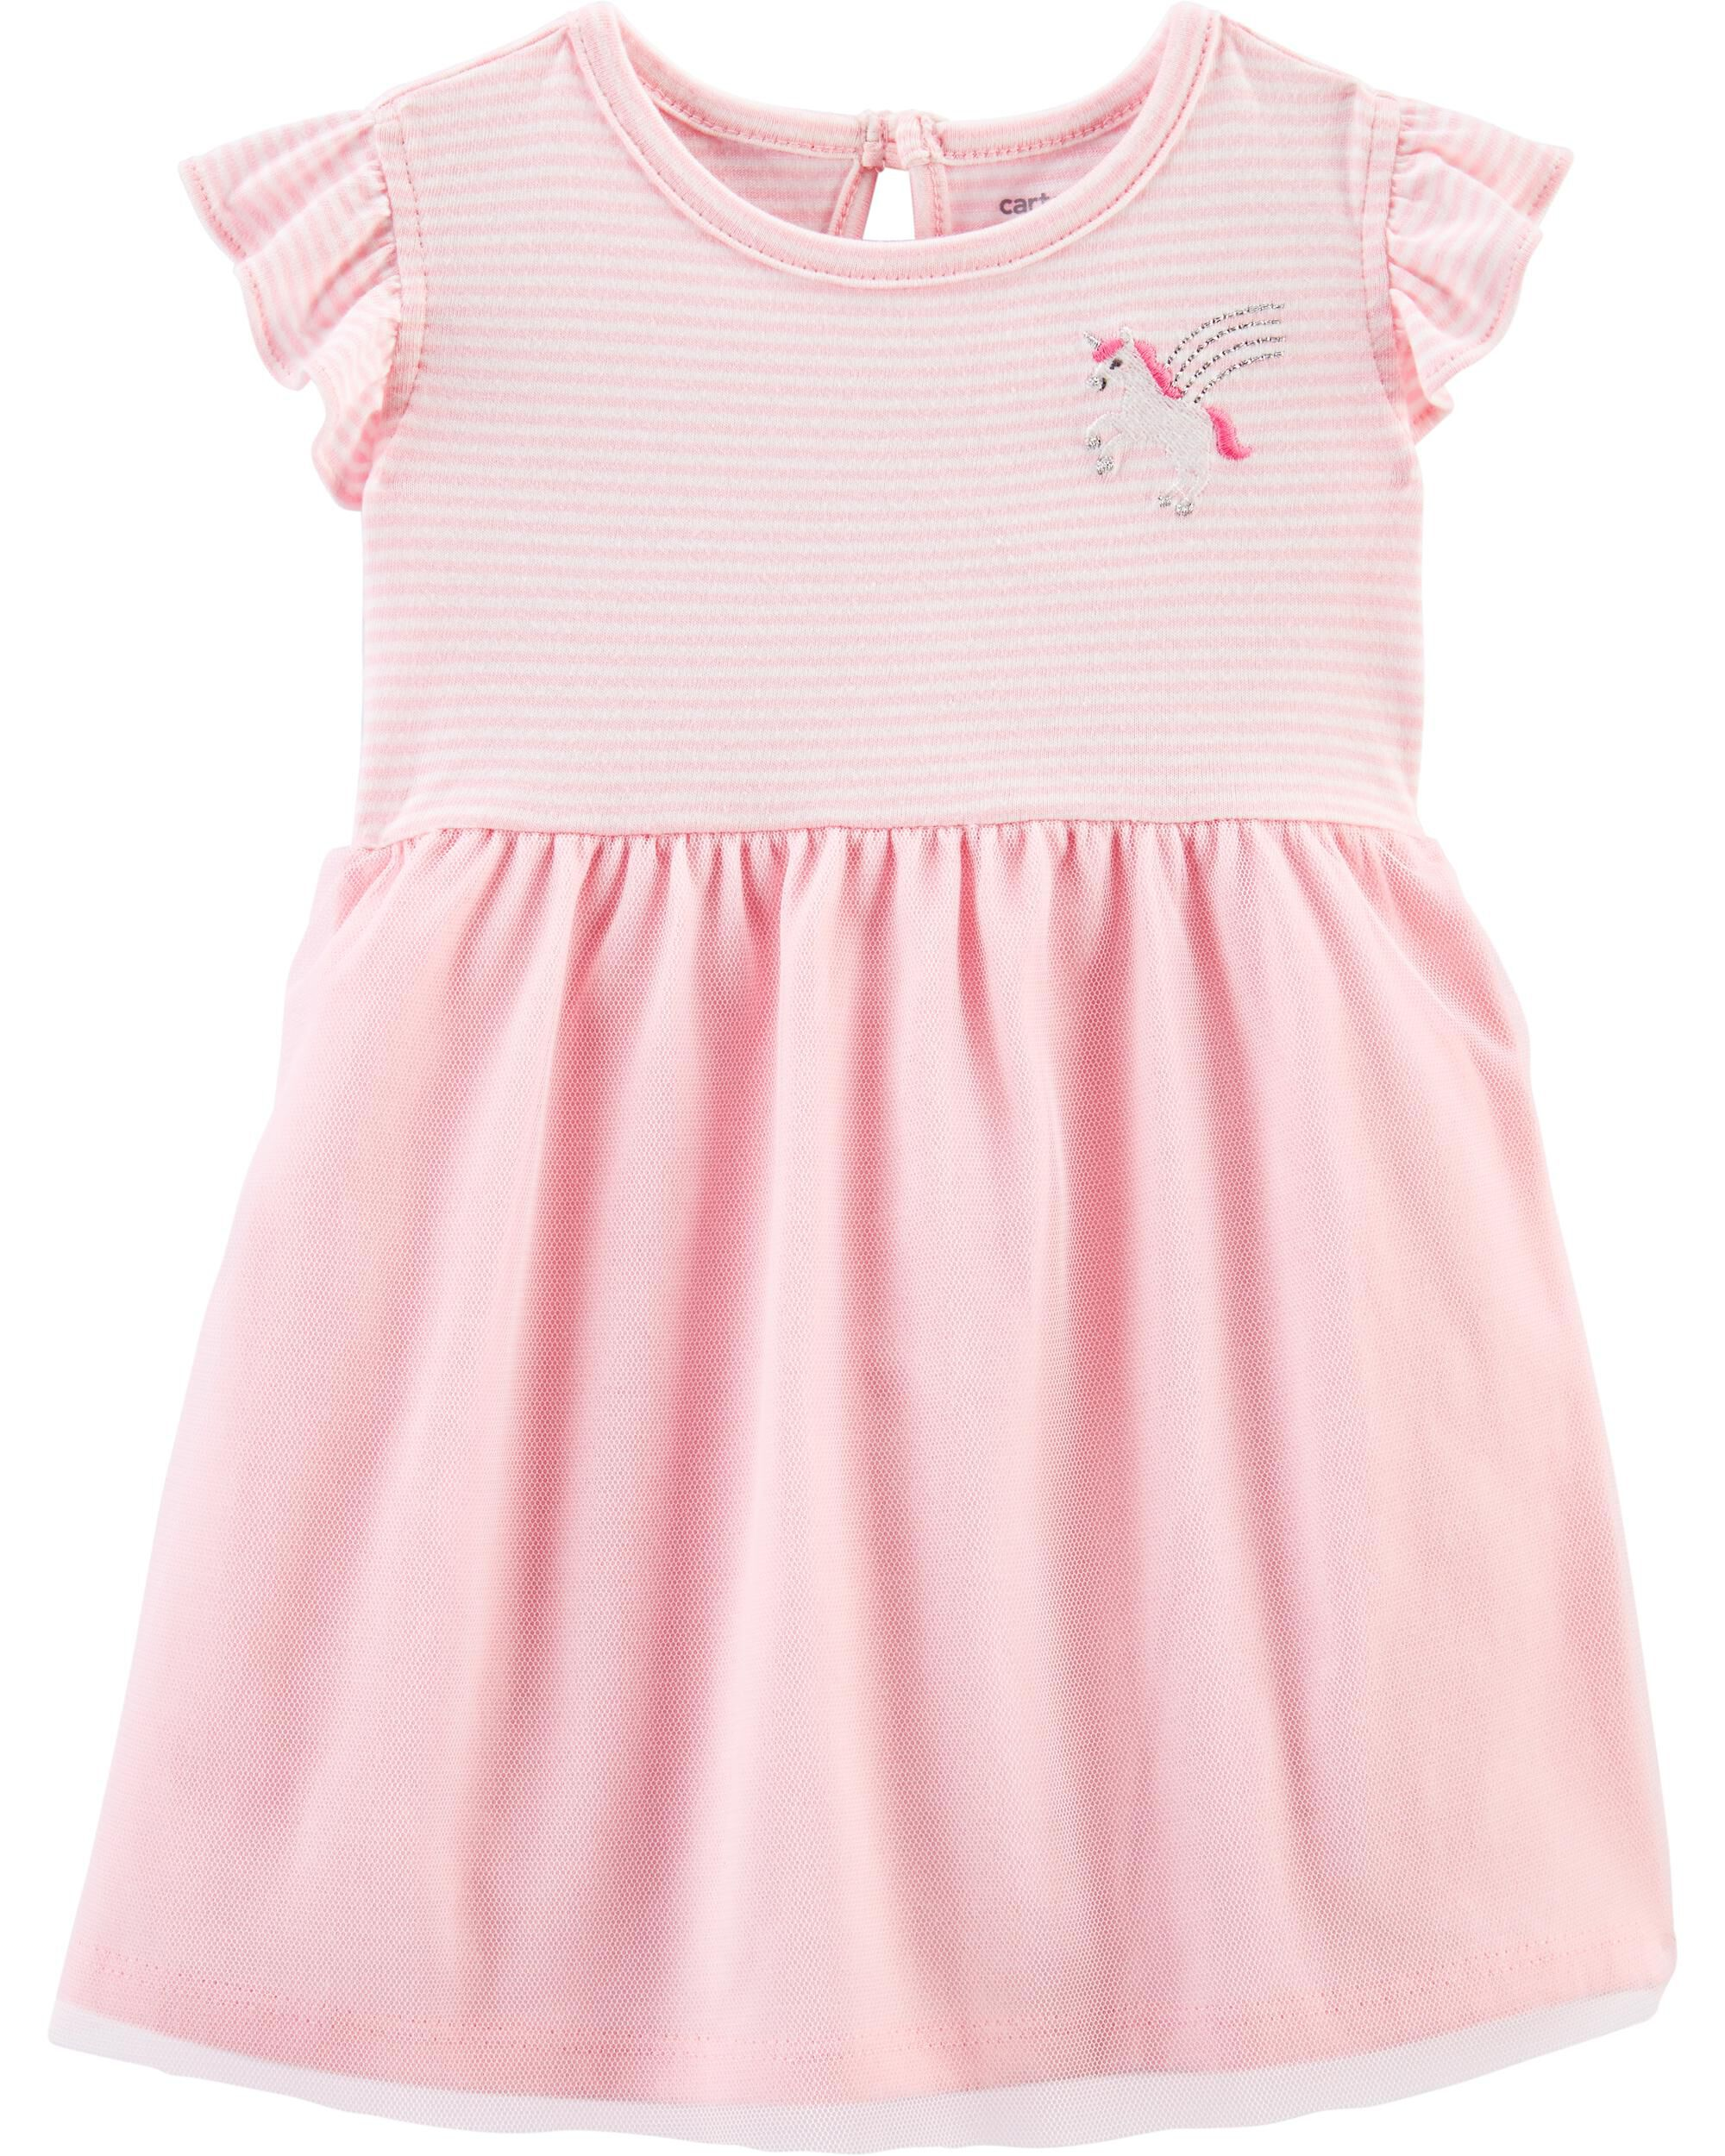 NWT Girls 3-6 month Carters striped sleeveless strawberry shorts bubble romper